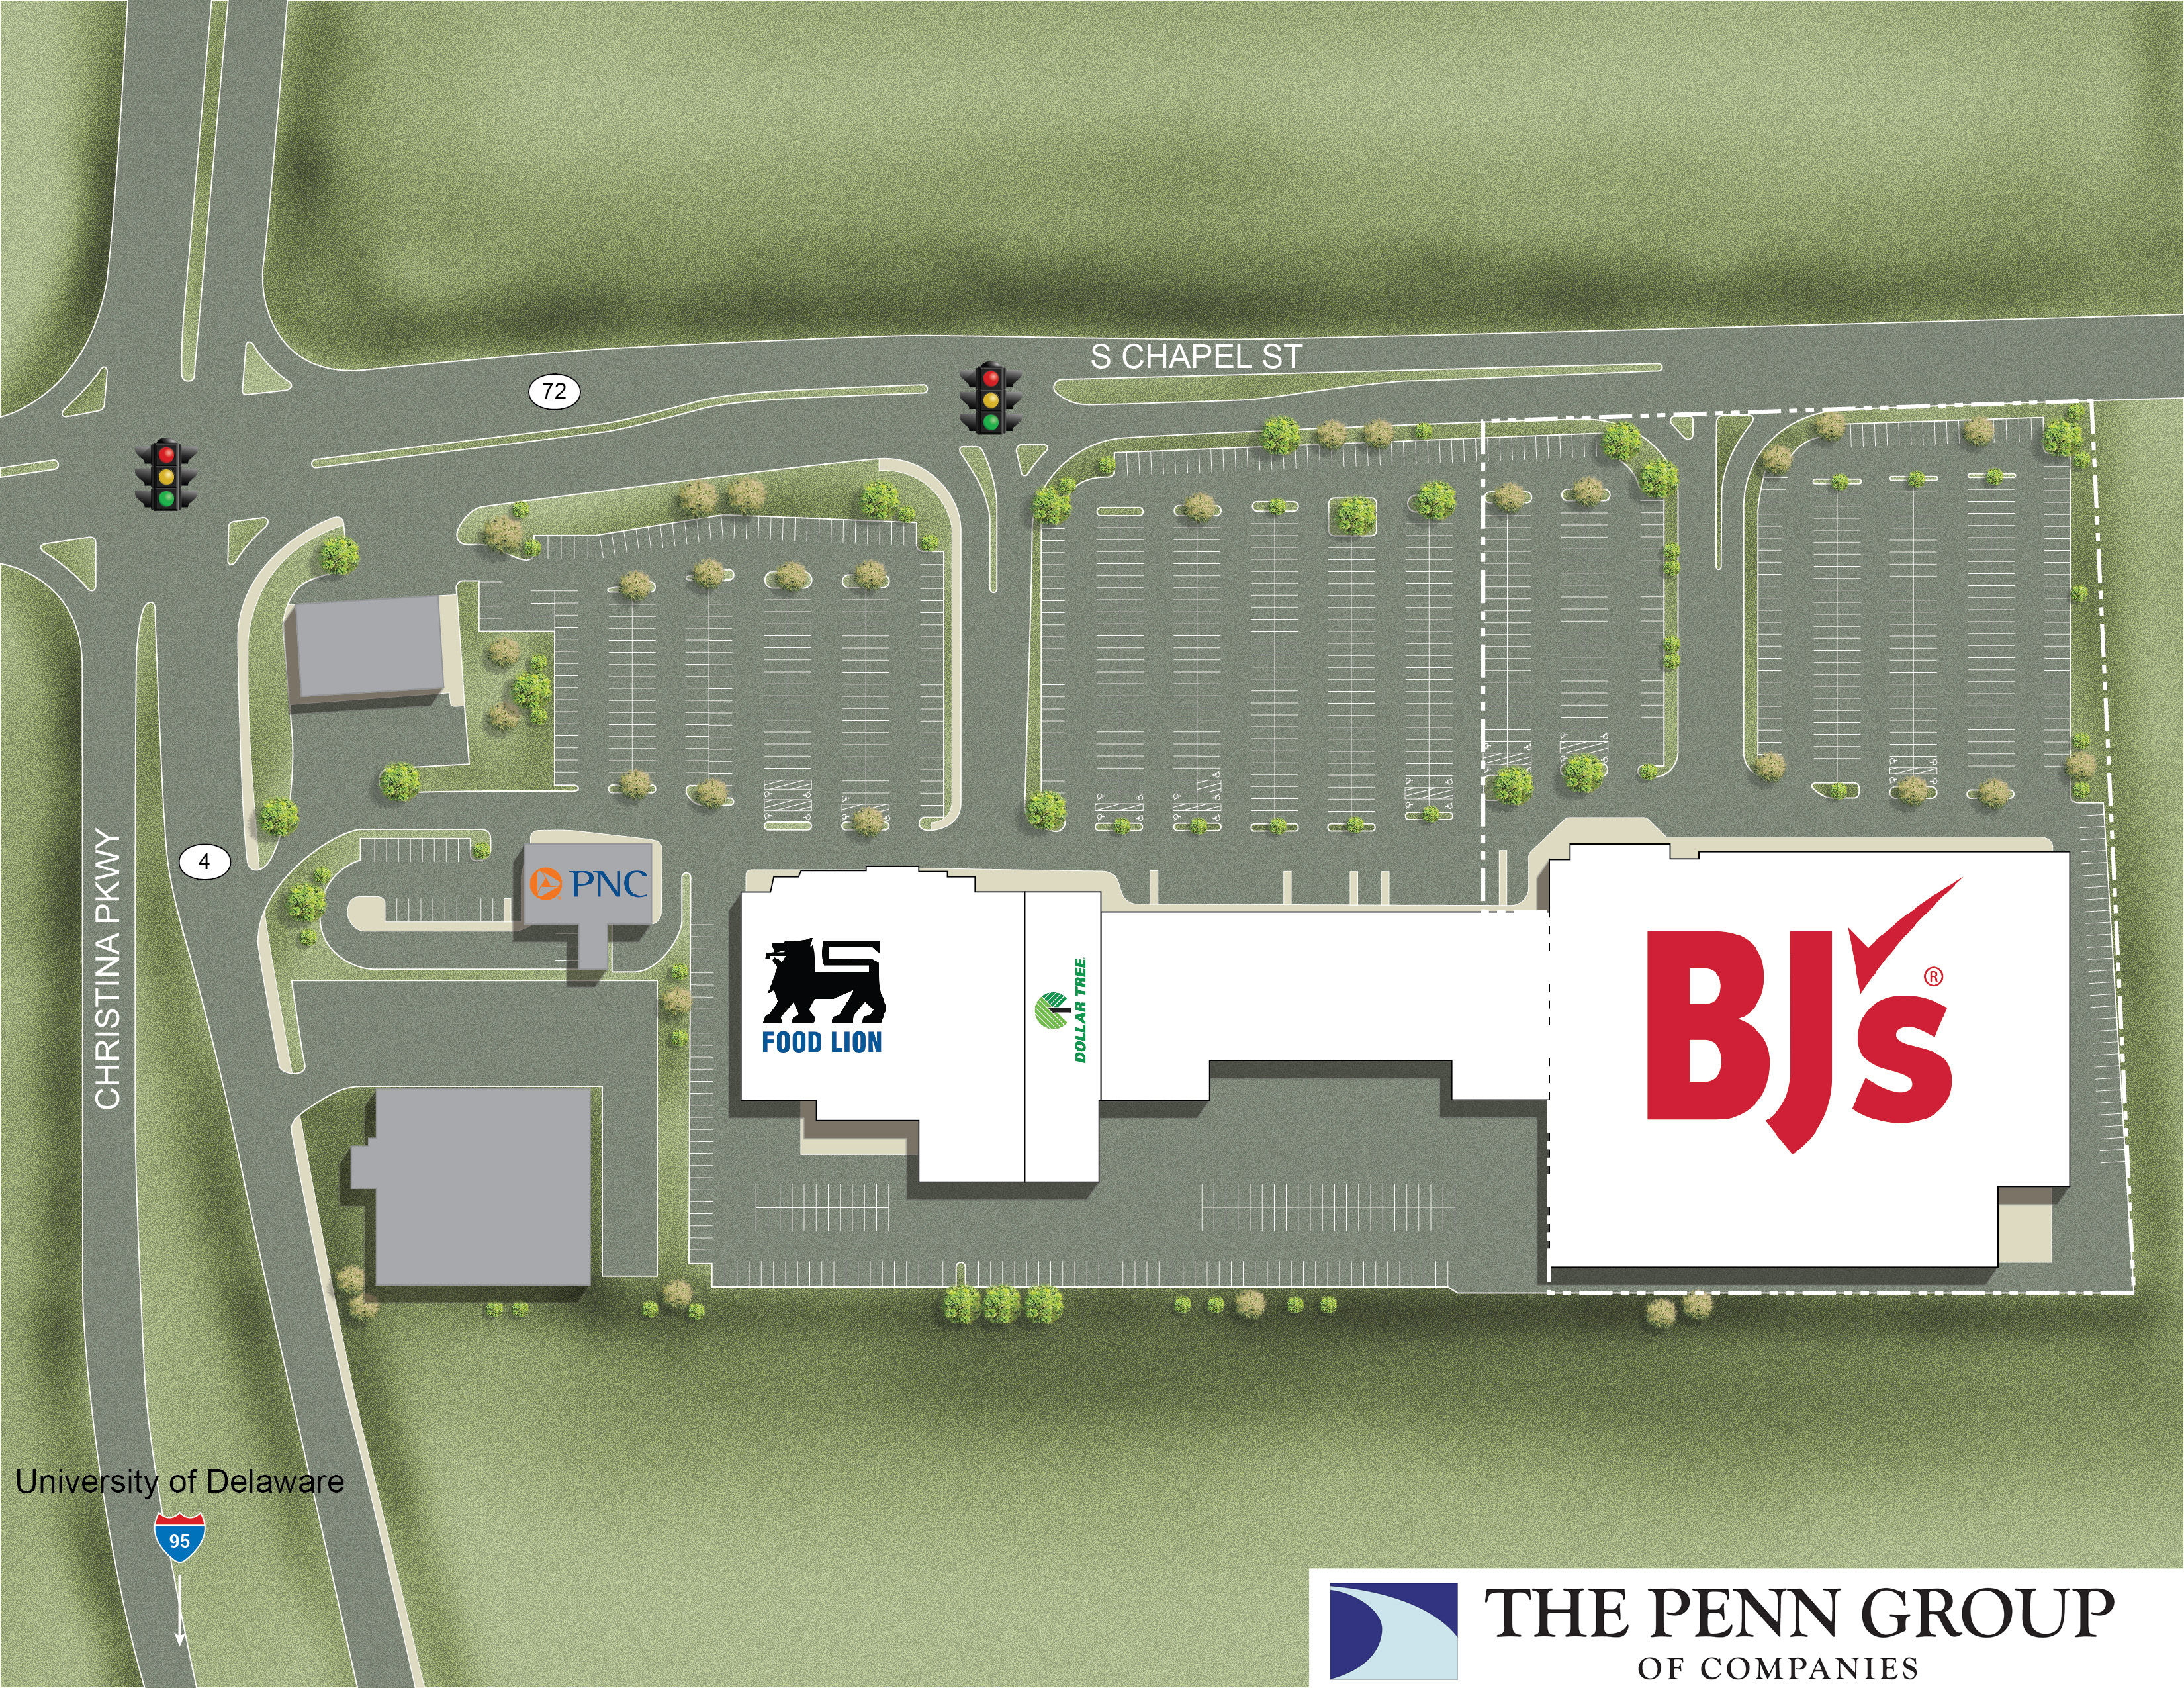 BJ's Wholesale Club | Penn Group of Companies